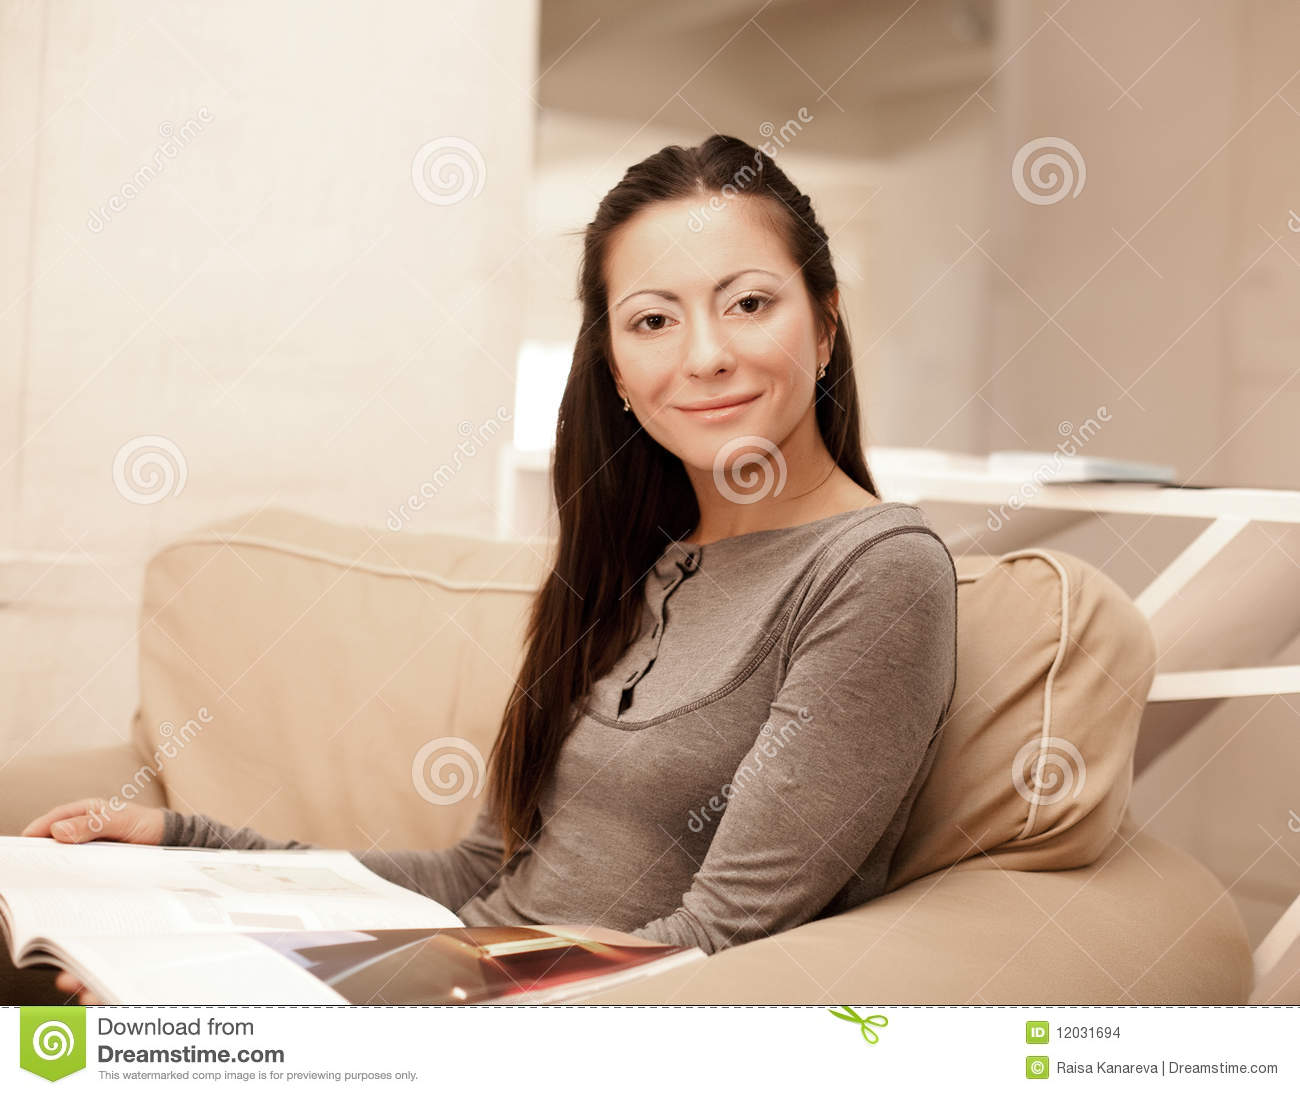 Casting Couch Young: Woman Reads A Magazine Stock Images